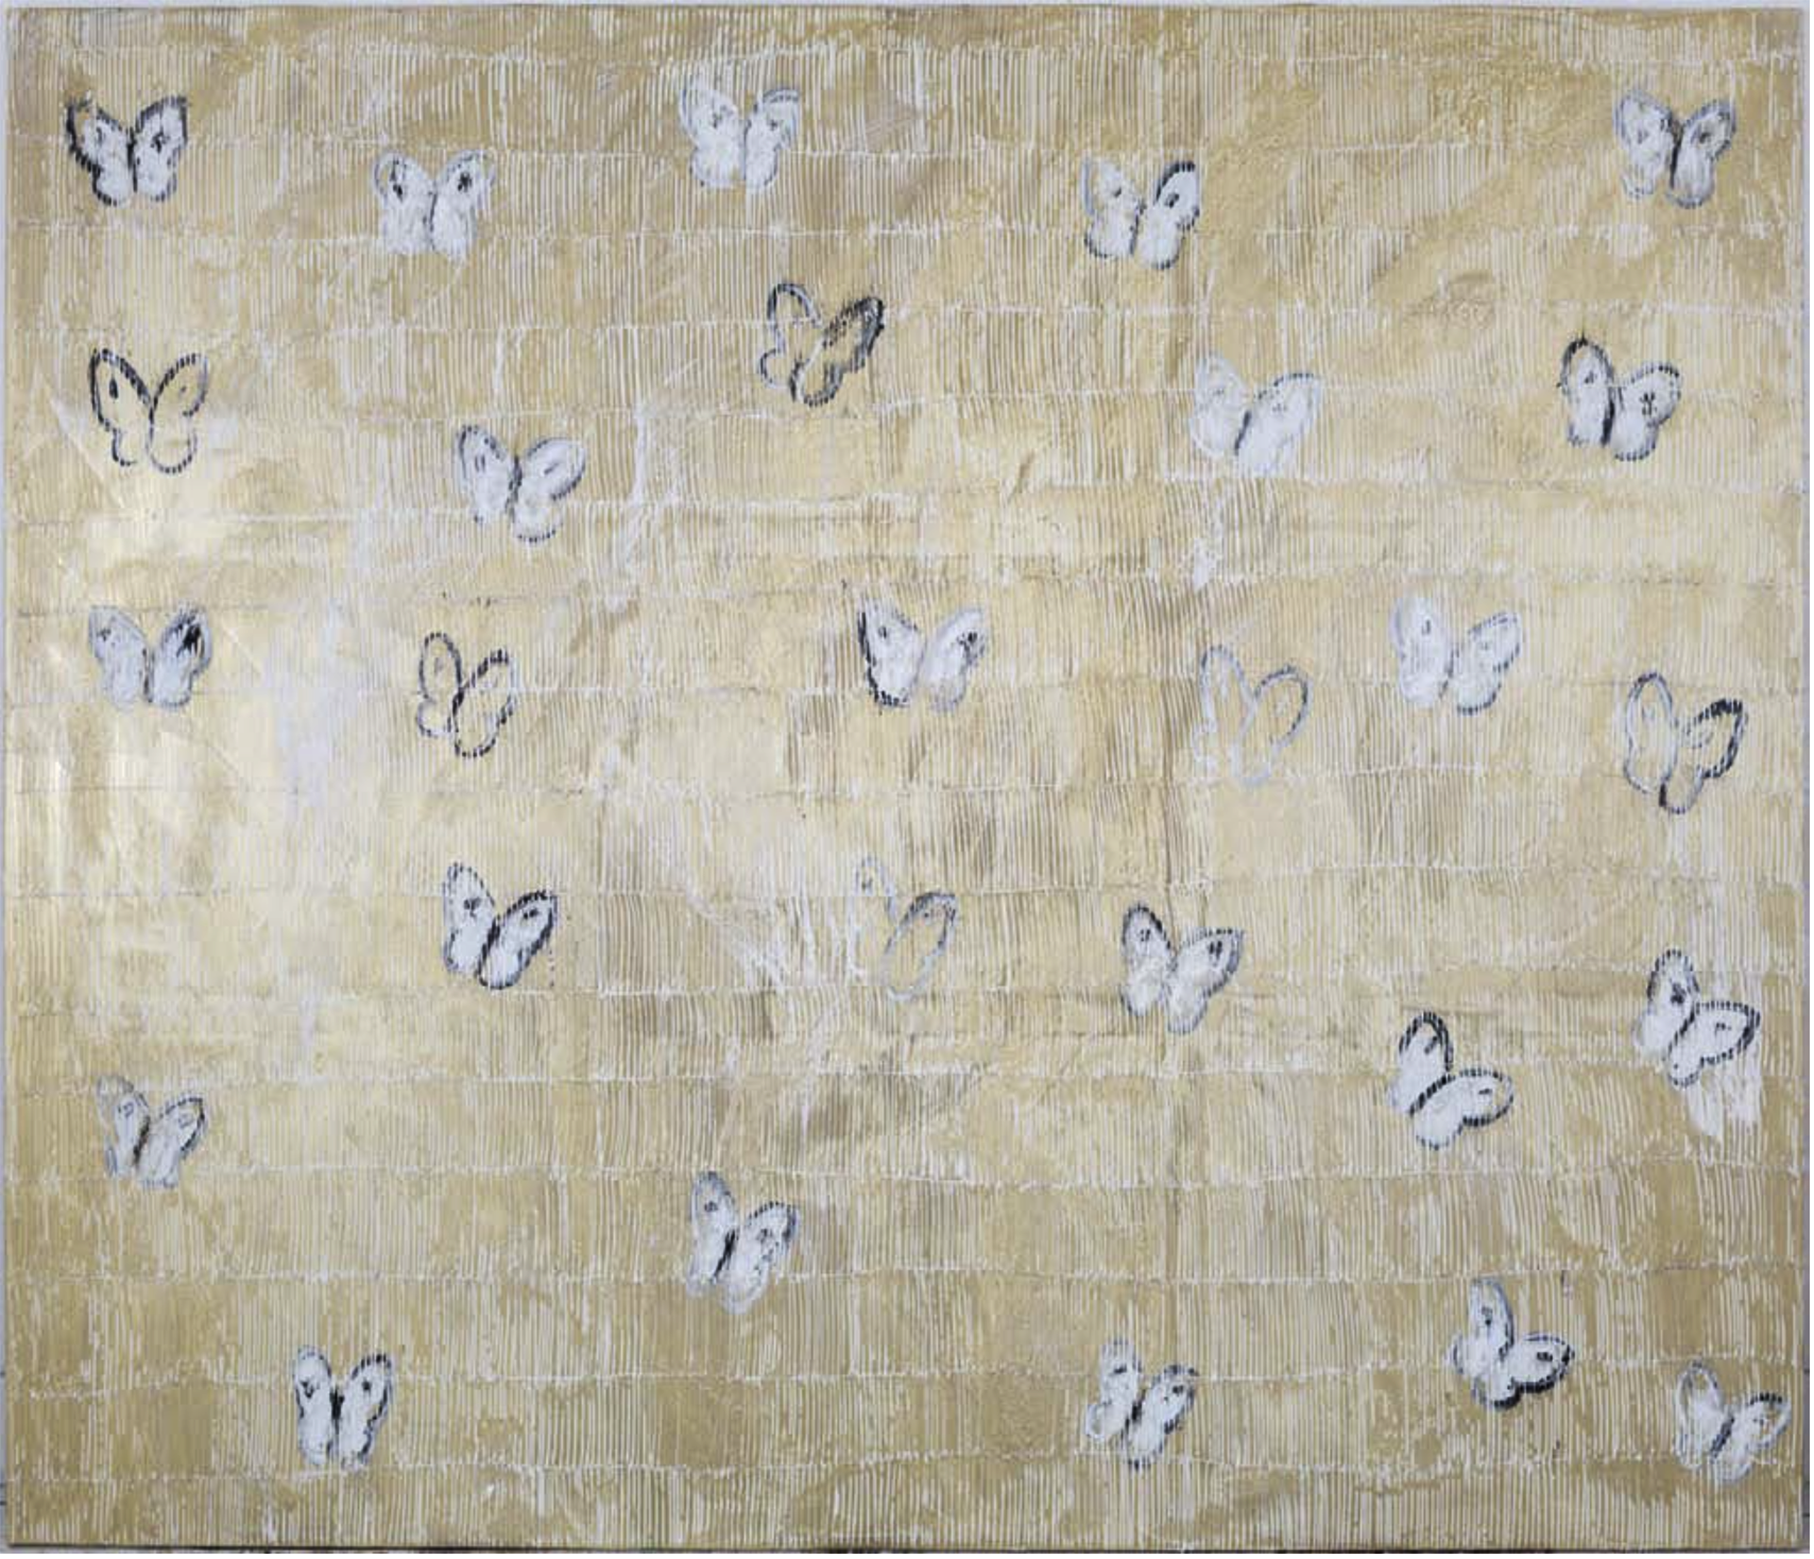 WHITE ASCENTION Huile sur Toile 183x214cm / 72x84 inches